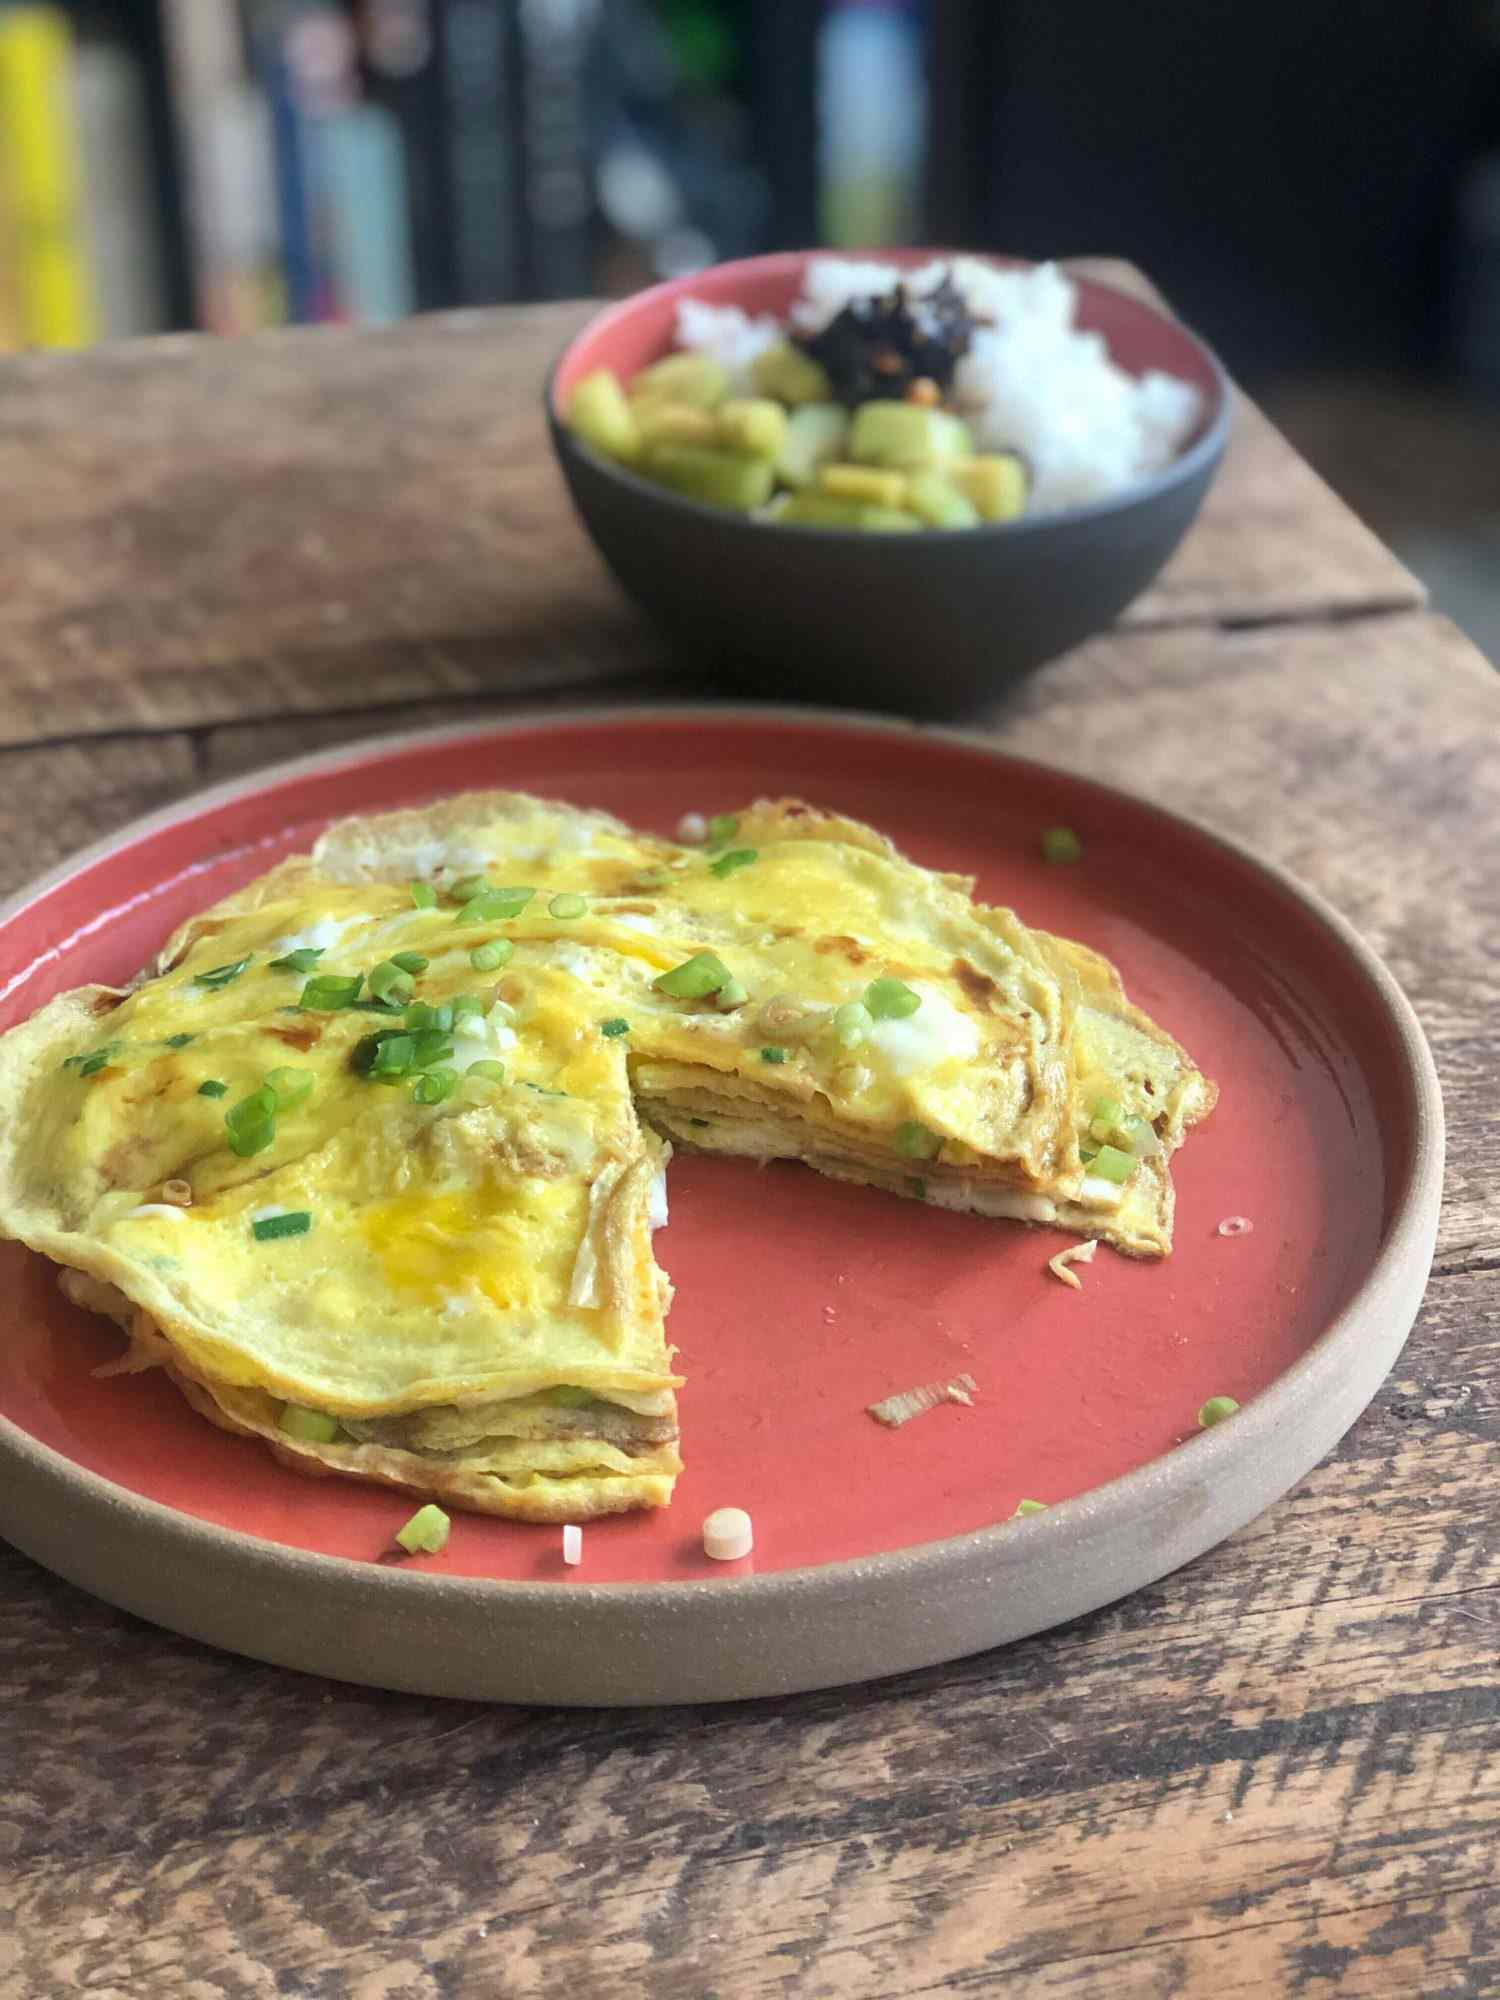 Layered scallion omelet on a plate